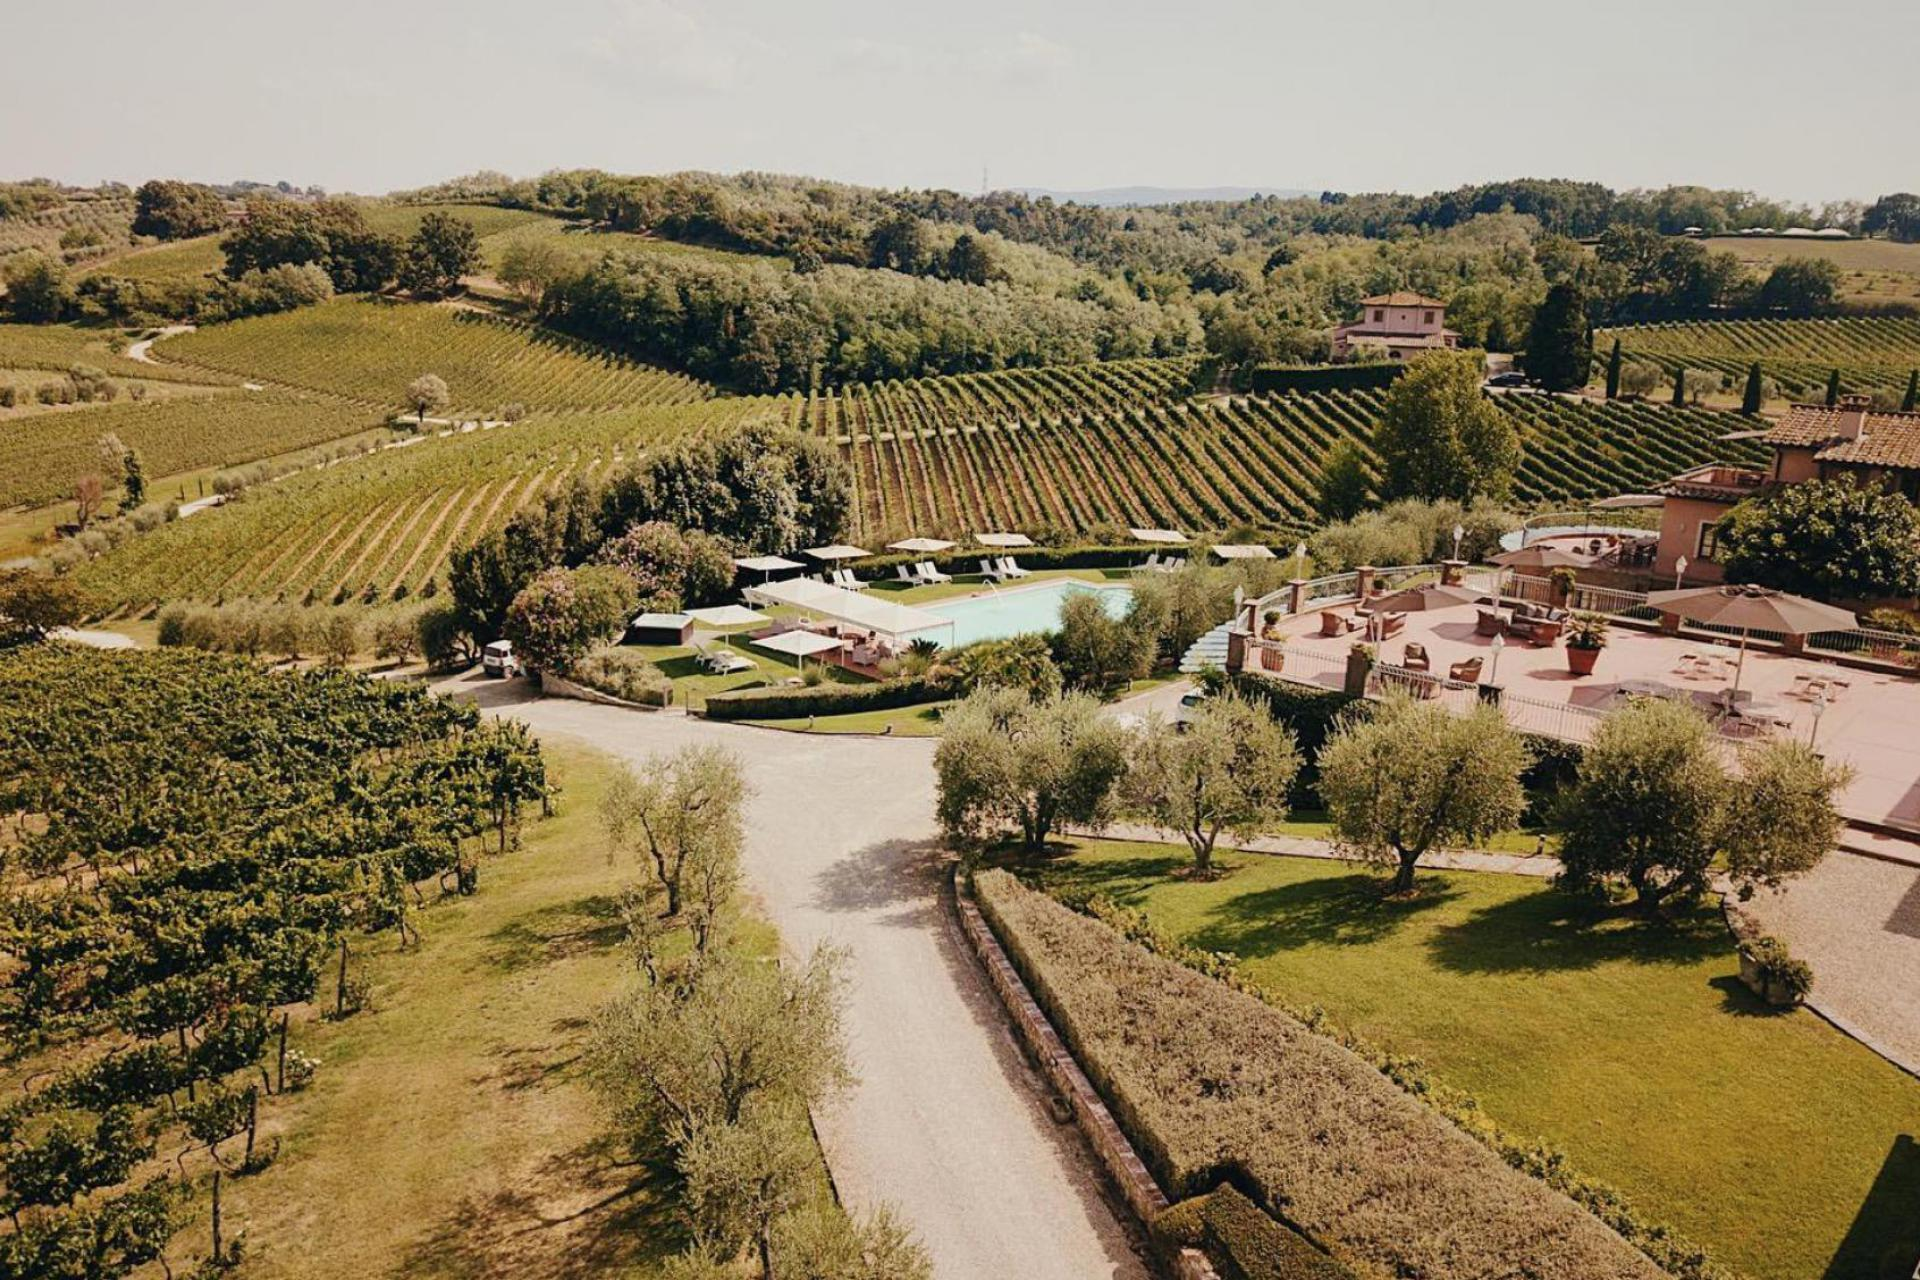 Agriturismo Tuscany Winery and luxury agriturismo near Pisa